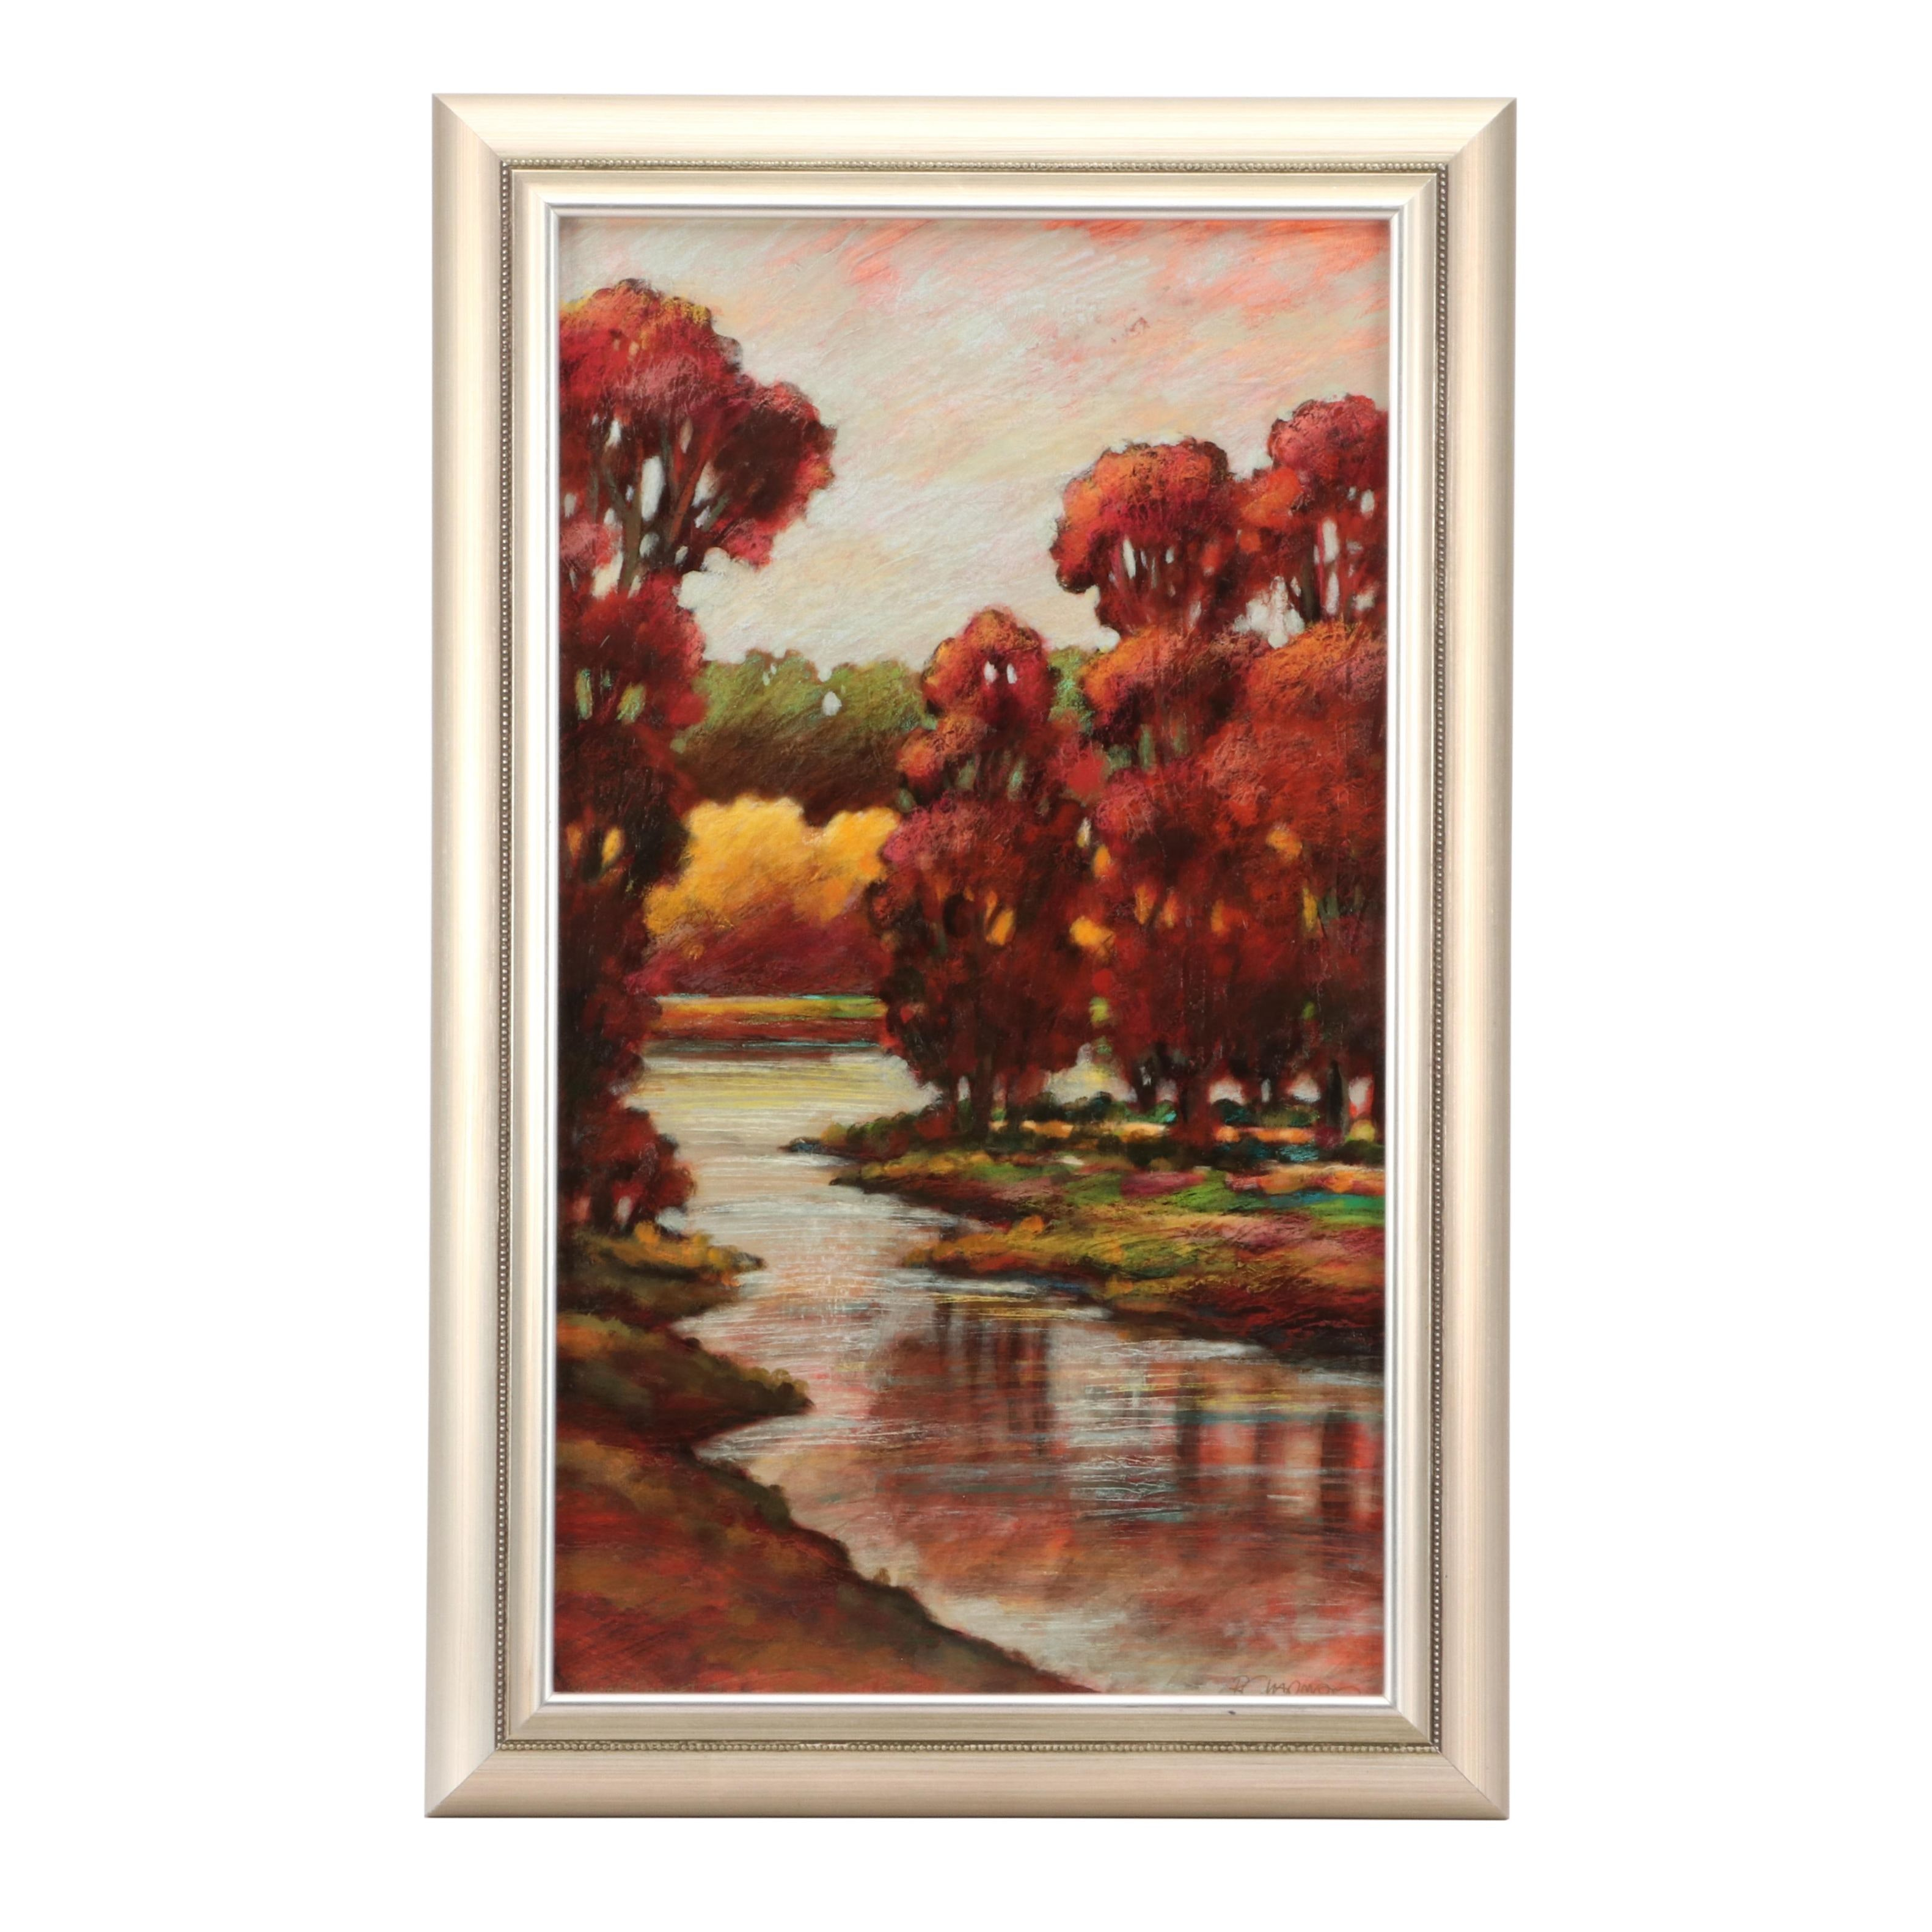 R. Chapman Acrylic Painting of Autumn Landscape